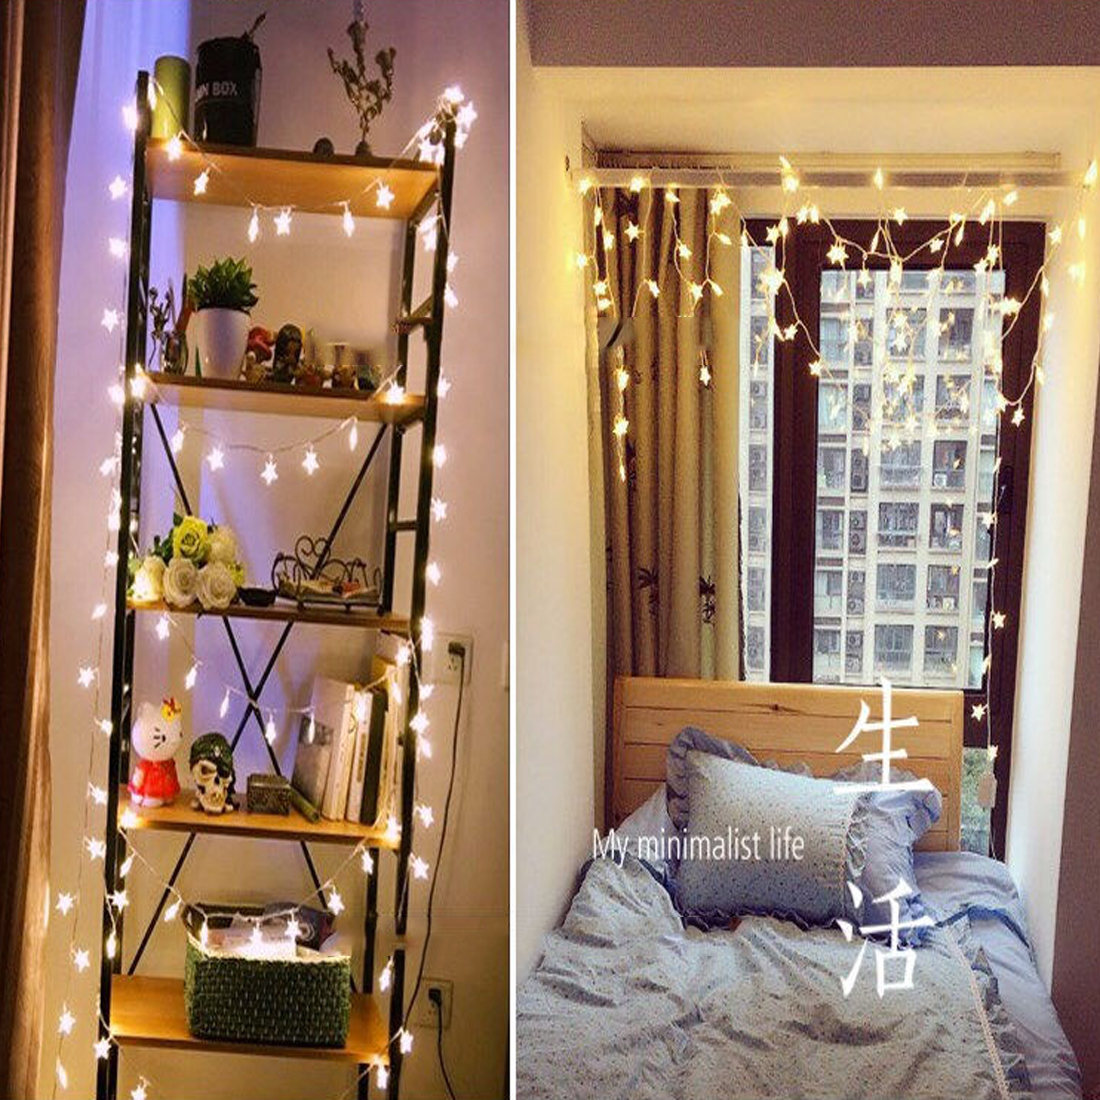 1pcs Christmas Lights Outdoor 100LED String Lights Festive lantern for Home Wedding Party Decoration EU Plug With Tail Power